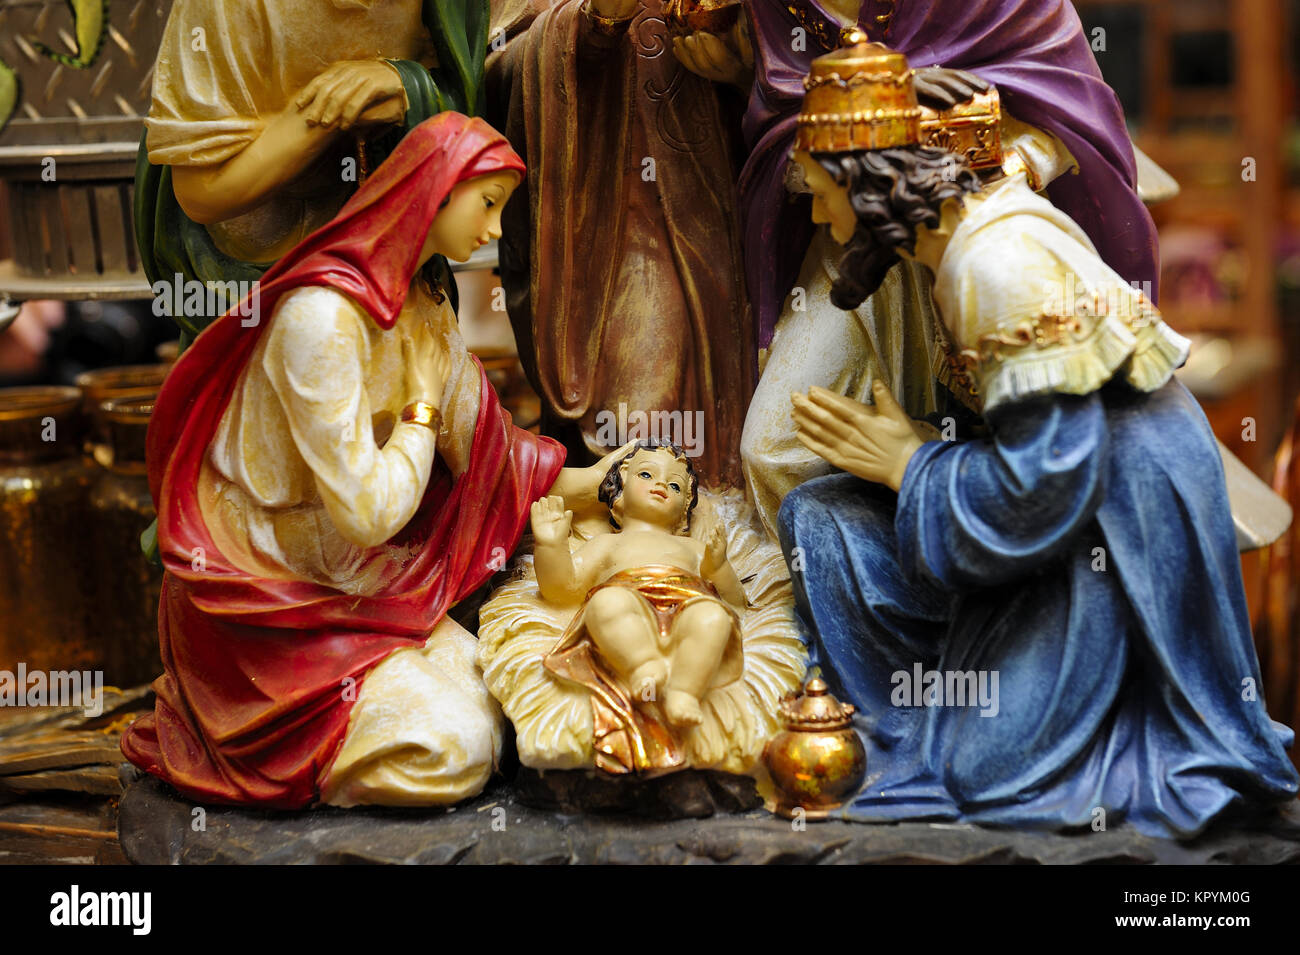 Christmas Jesus Birth Images.Christmas Jesus Birth Child Biblical Characters